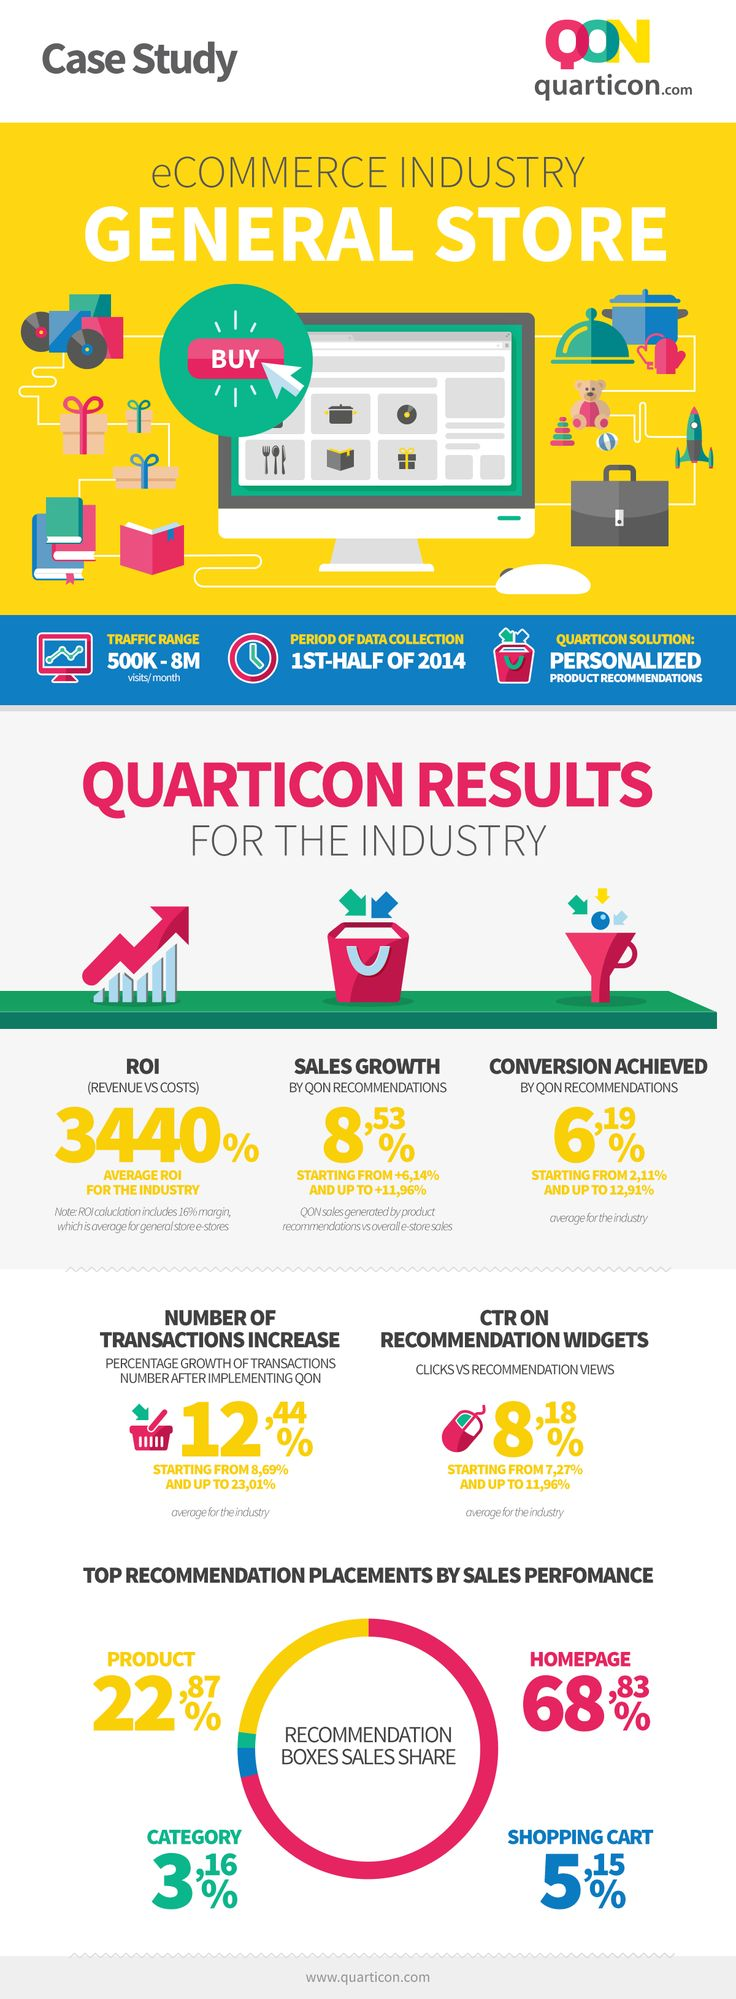 #infographics   Effects of using reQommend - personalized product recommendations by www.Quarticon.com in eCommerce, General store industry